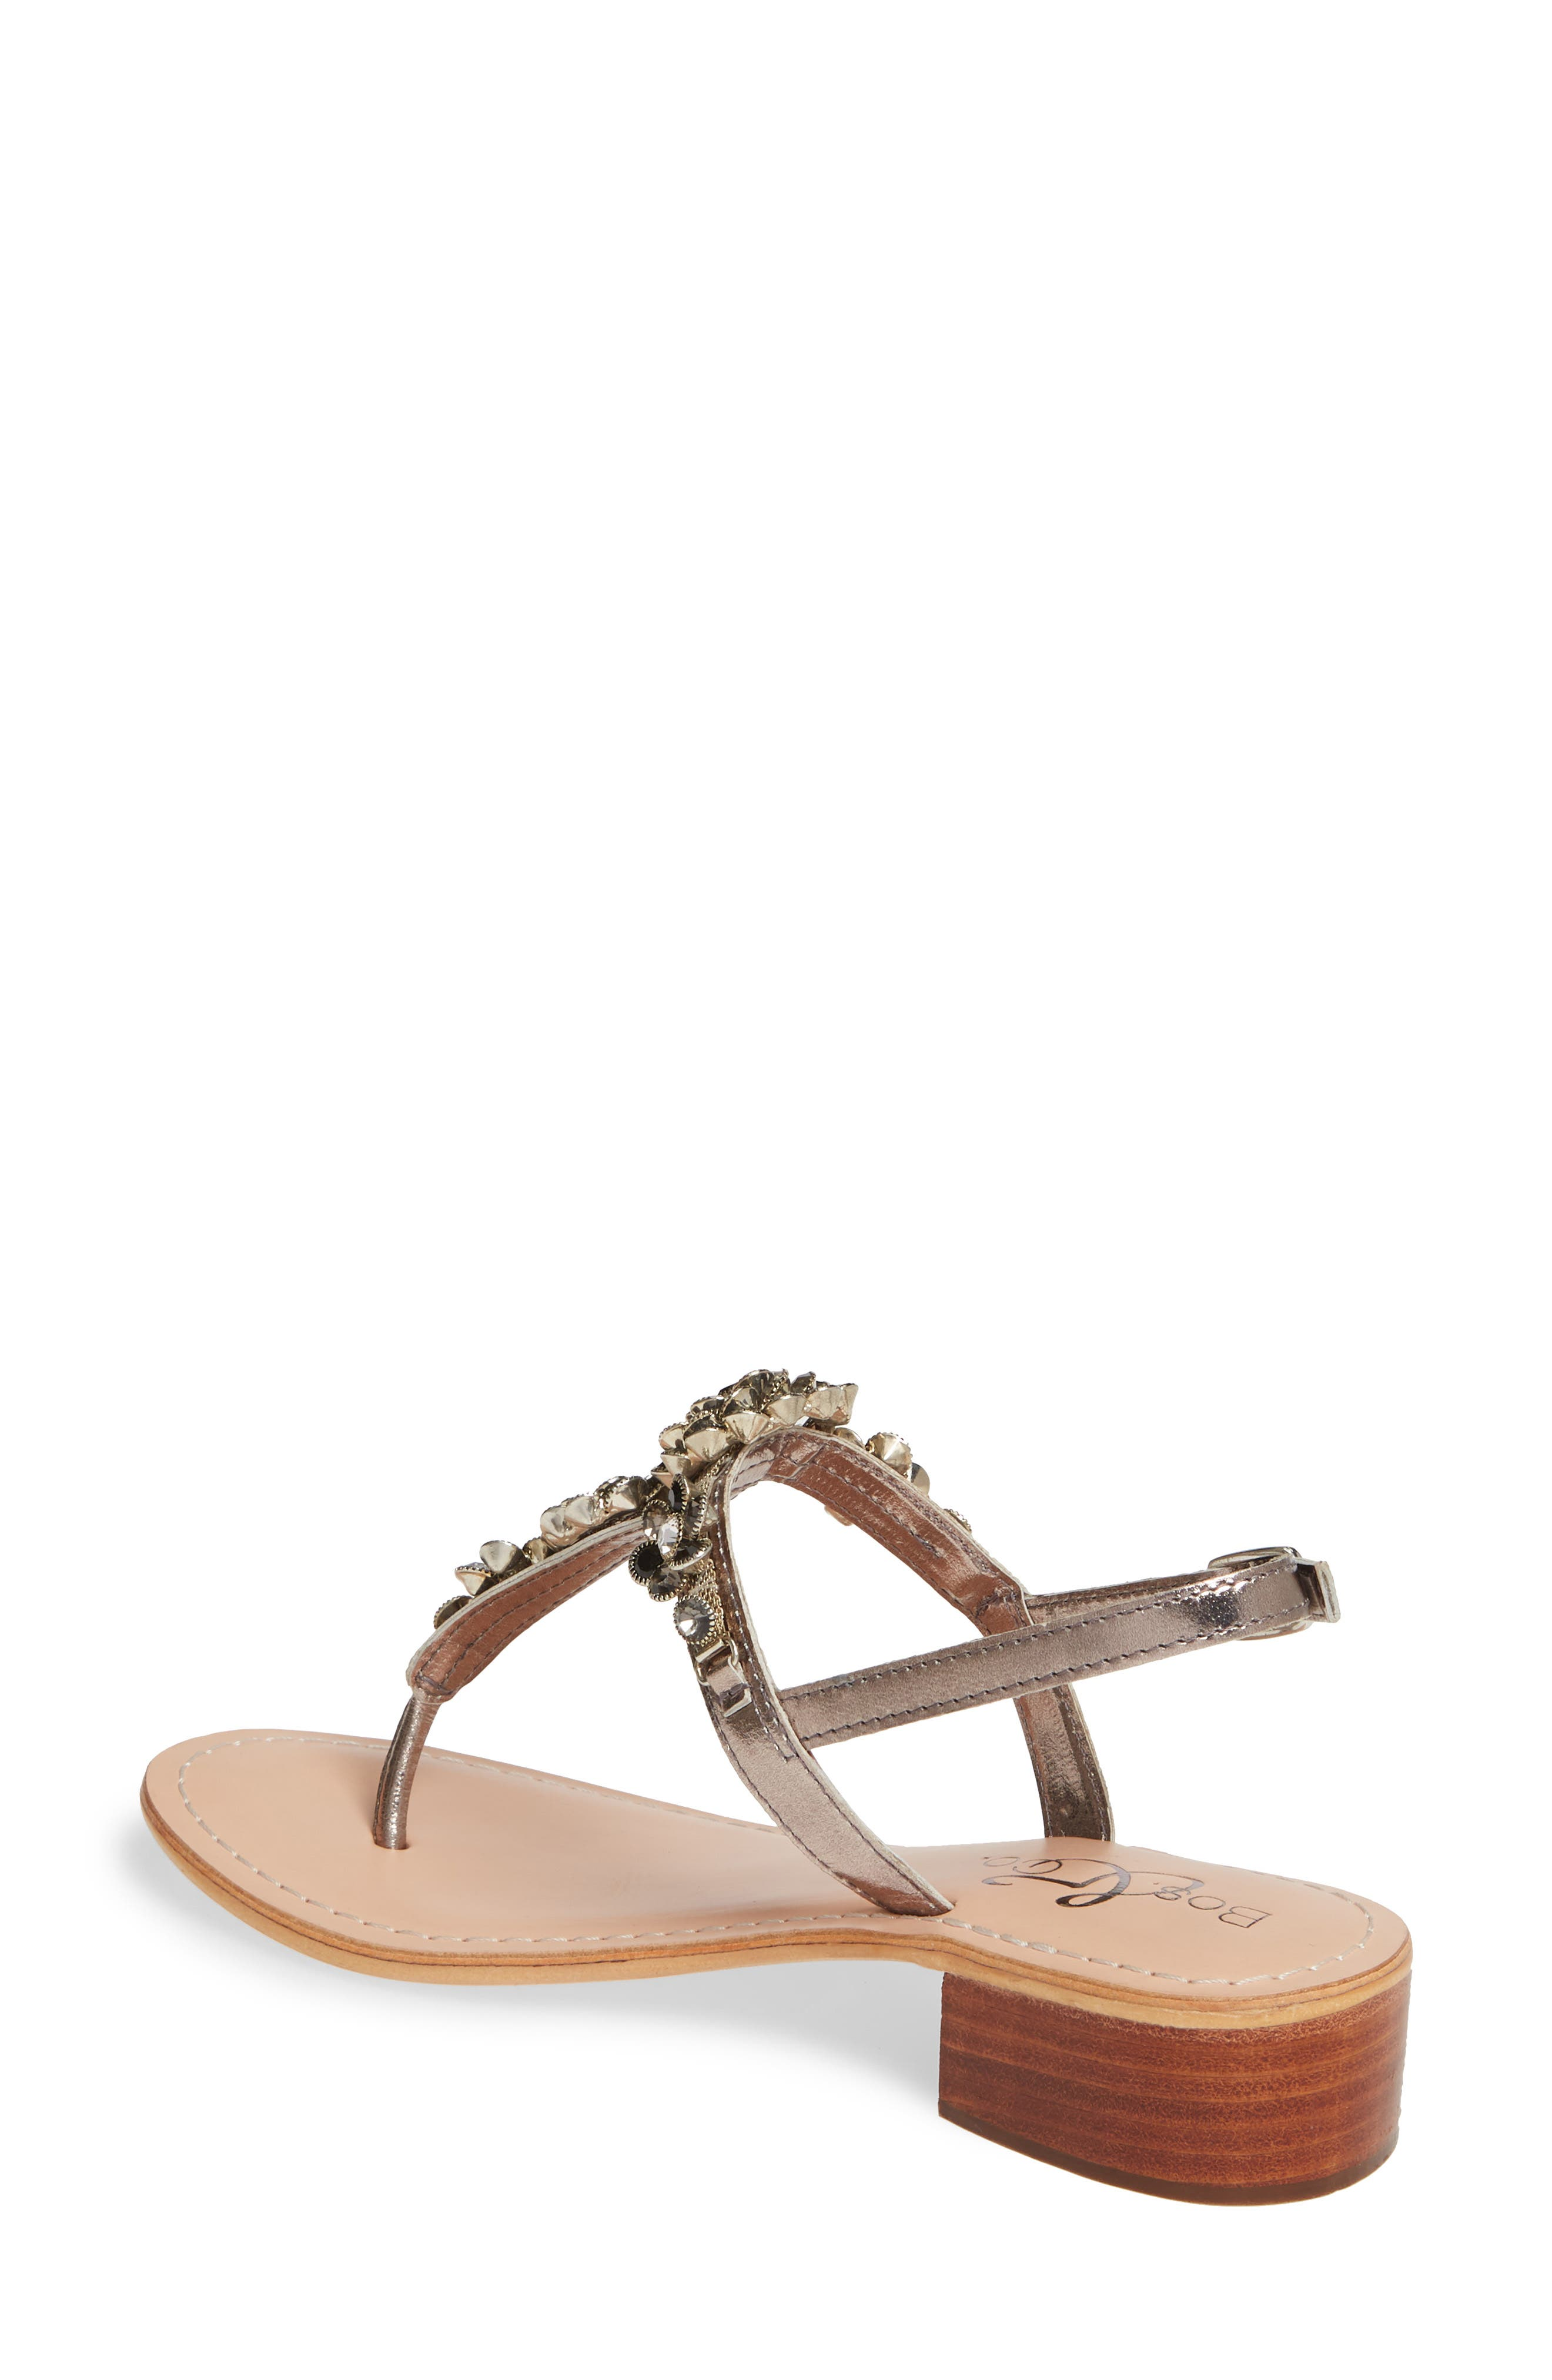 BOS. & CO.,                             Wyn Embellished Sandal,                             Alternate thumbnail 2, color,                             ANTHRACITE/ PEWTER LEATHER